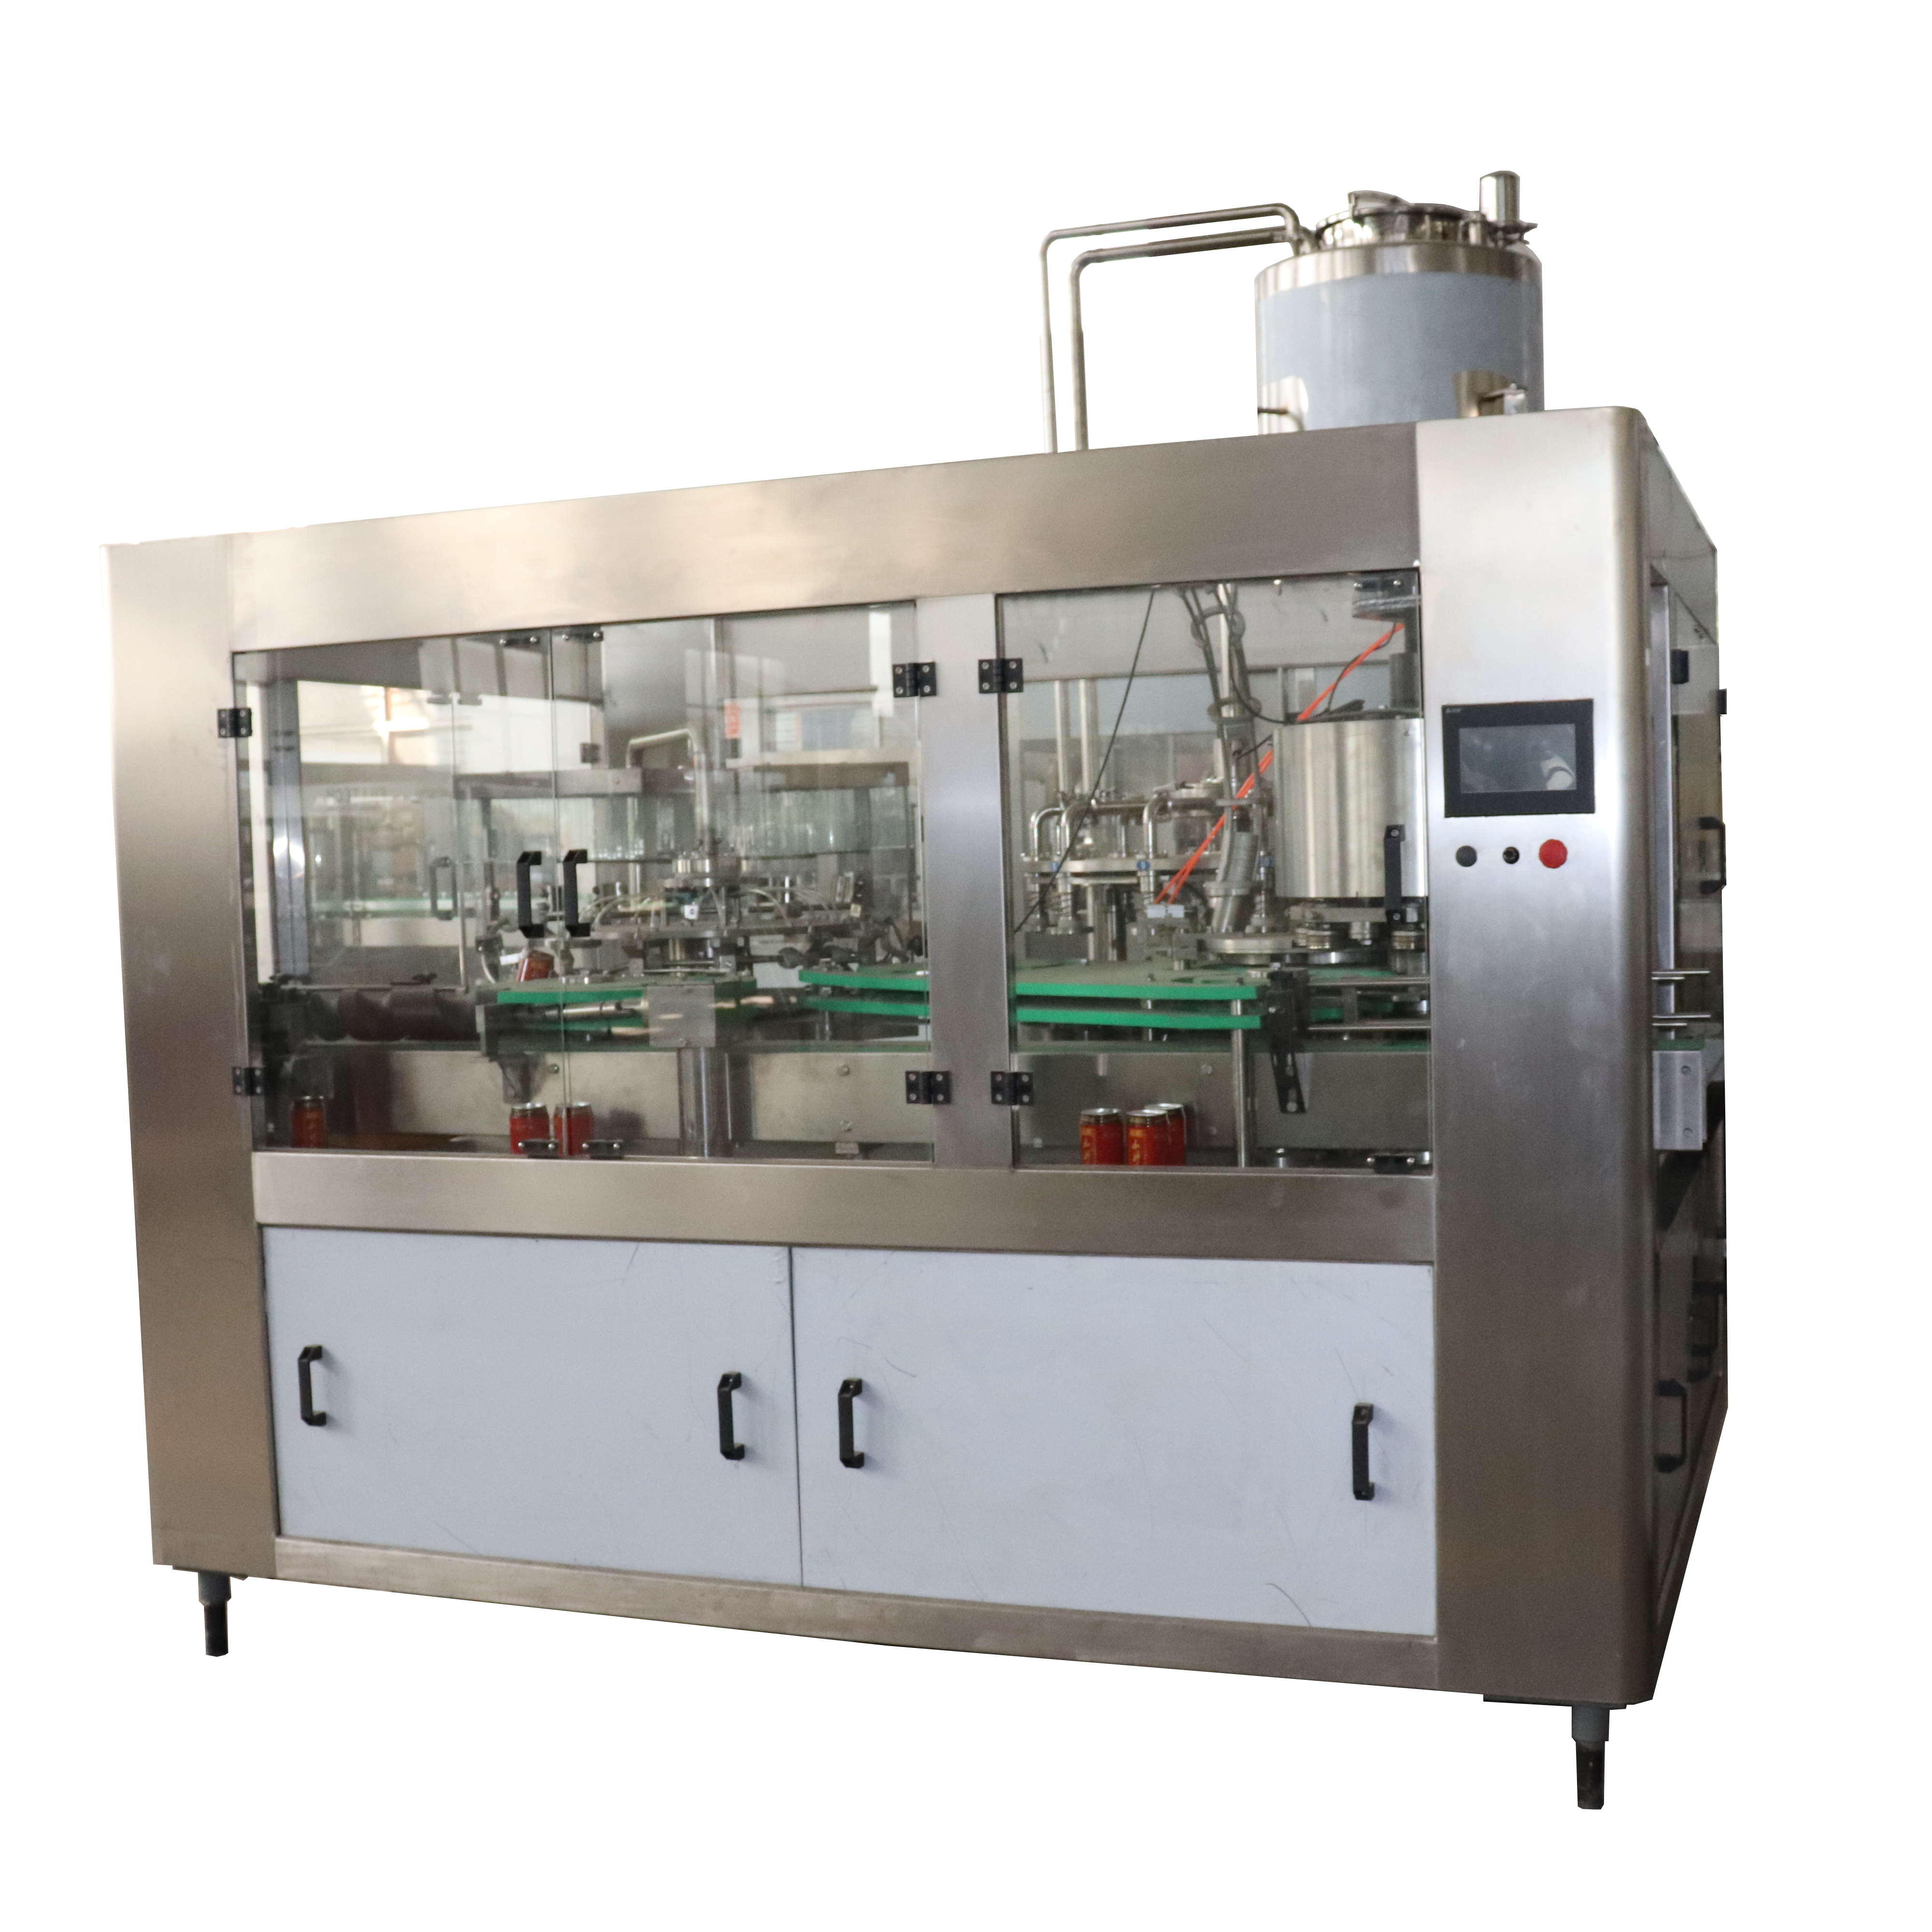 Automatic 2 in 1 monoblock ginger beer / root beer aluminum can rotary filling sealing machine price